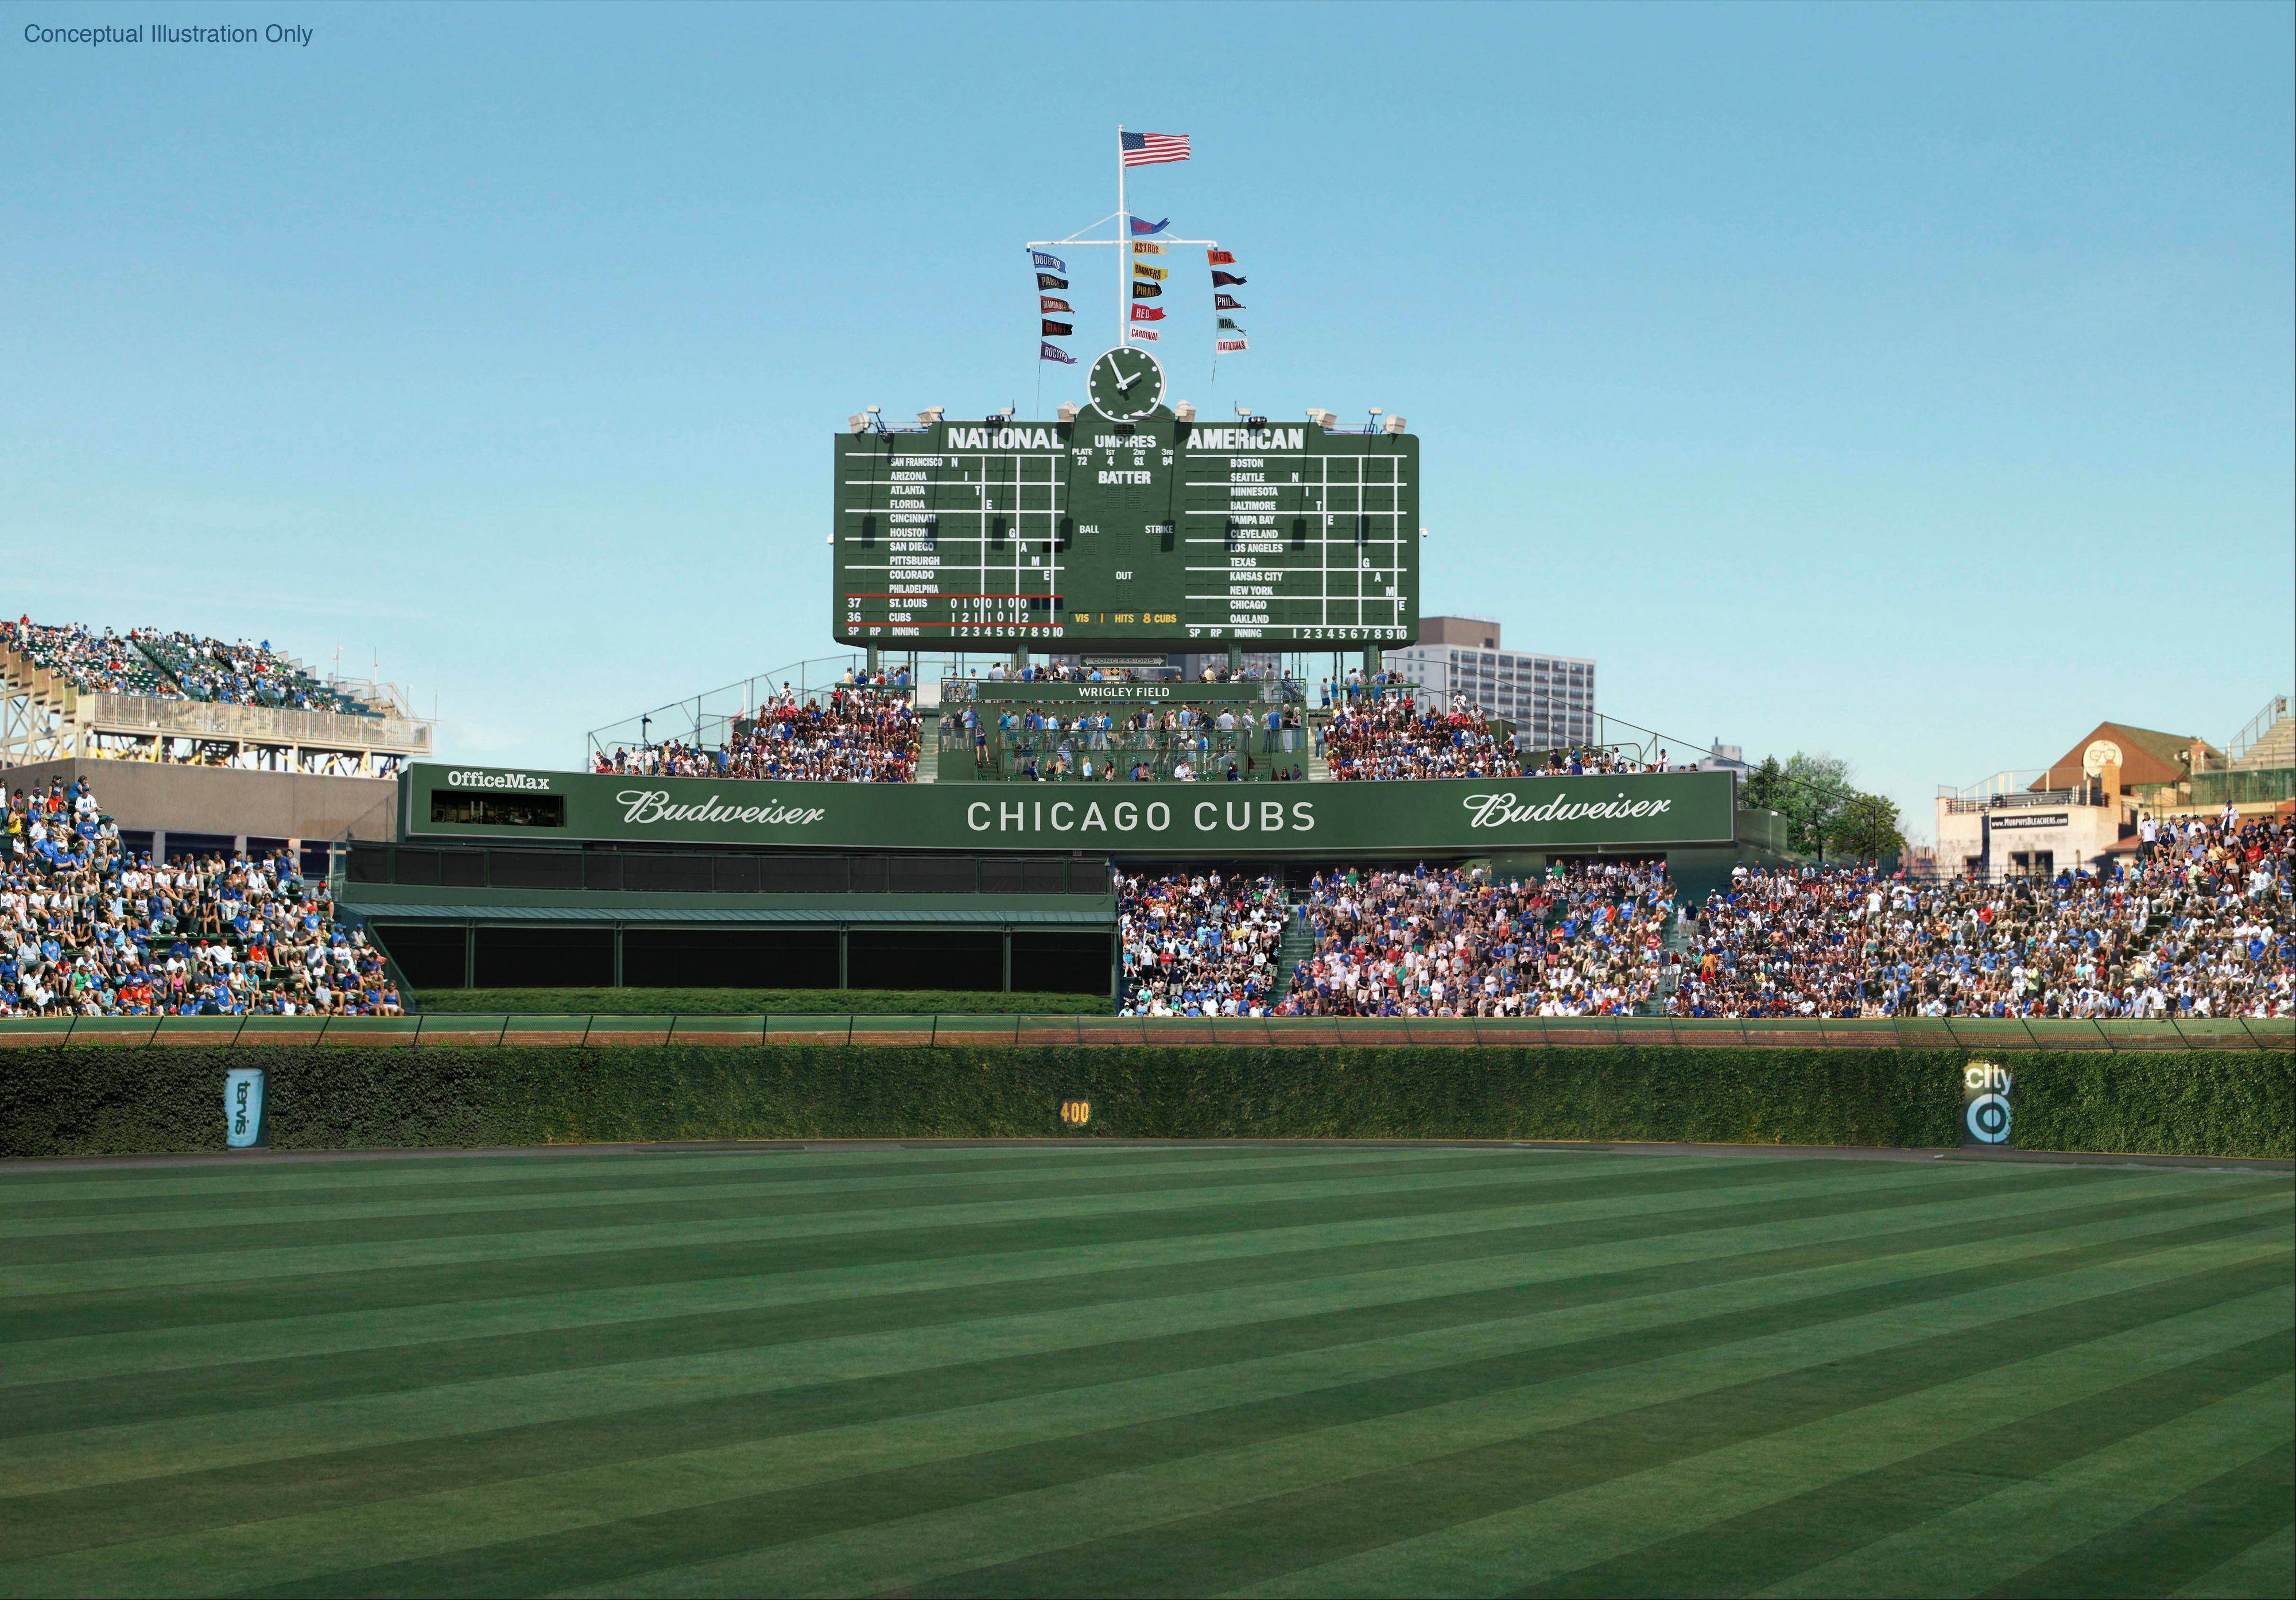 A view from Wrigley Field center field.